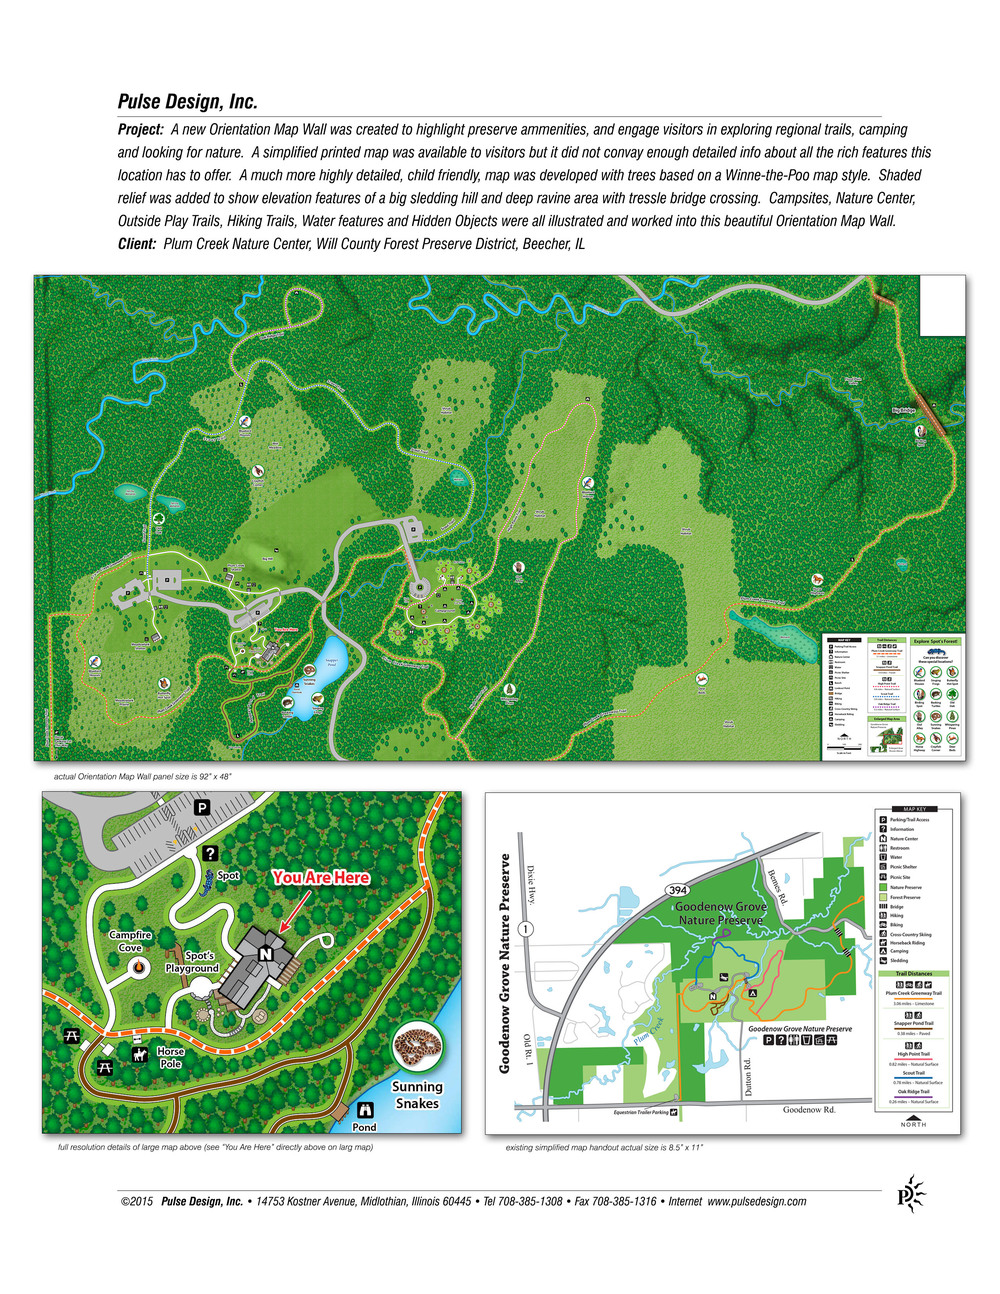 Plum-Creek-Inside-Map-Full-w-Detail-Pulse-Design-Inc.jpg